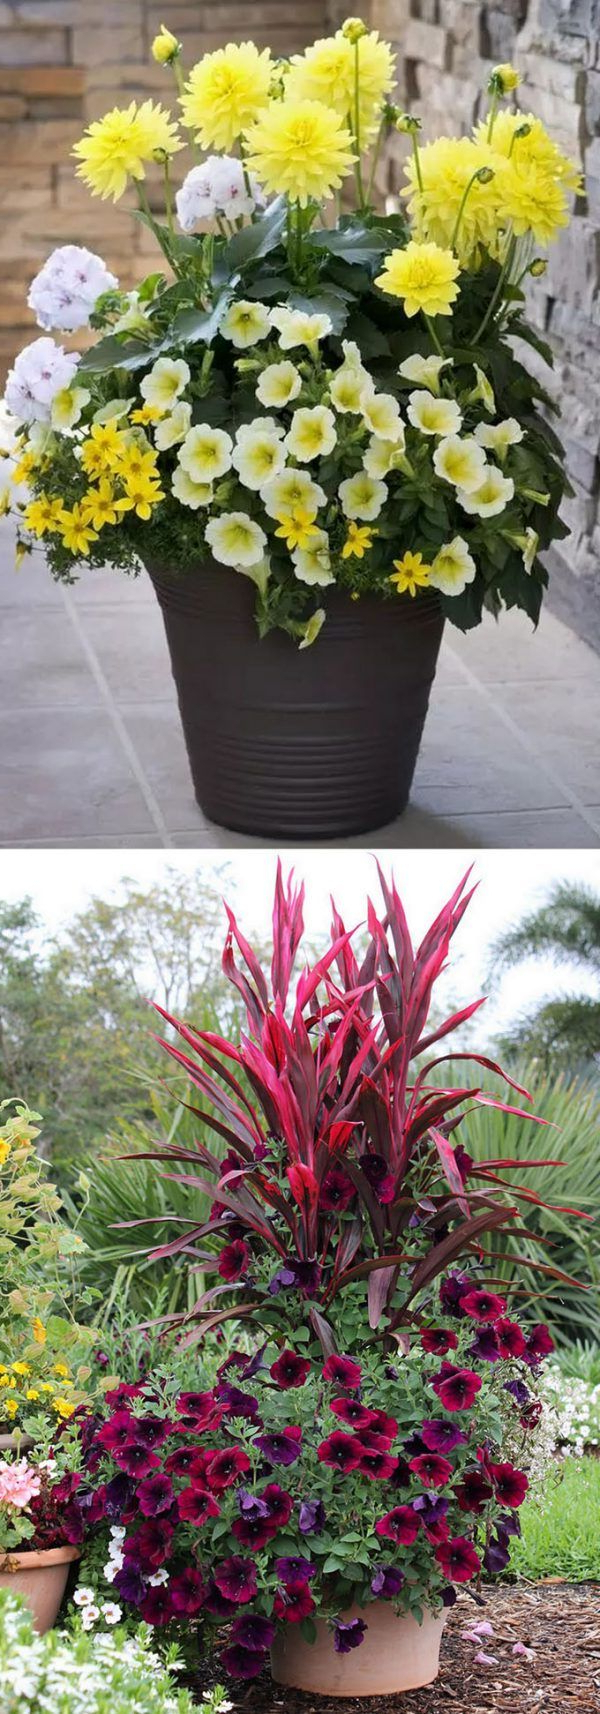 24 Stunning Container Garden Planting Ideas Plants